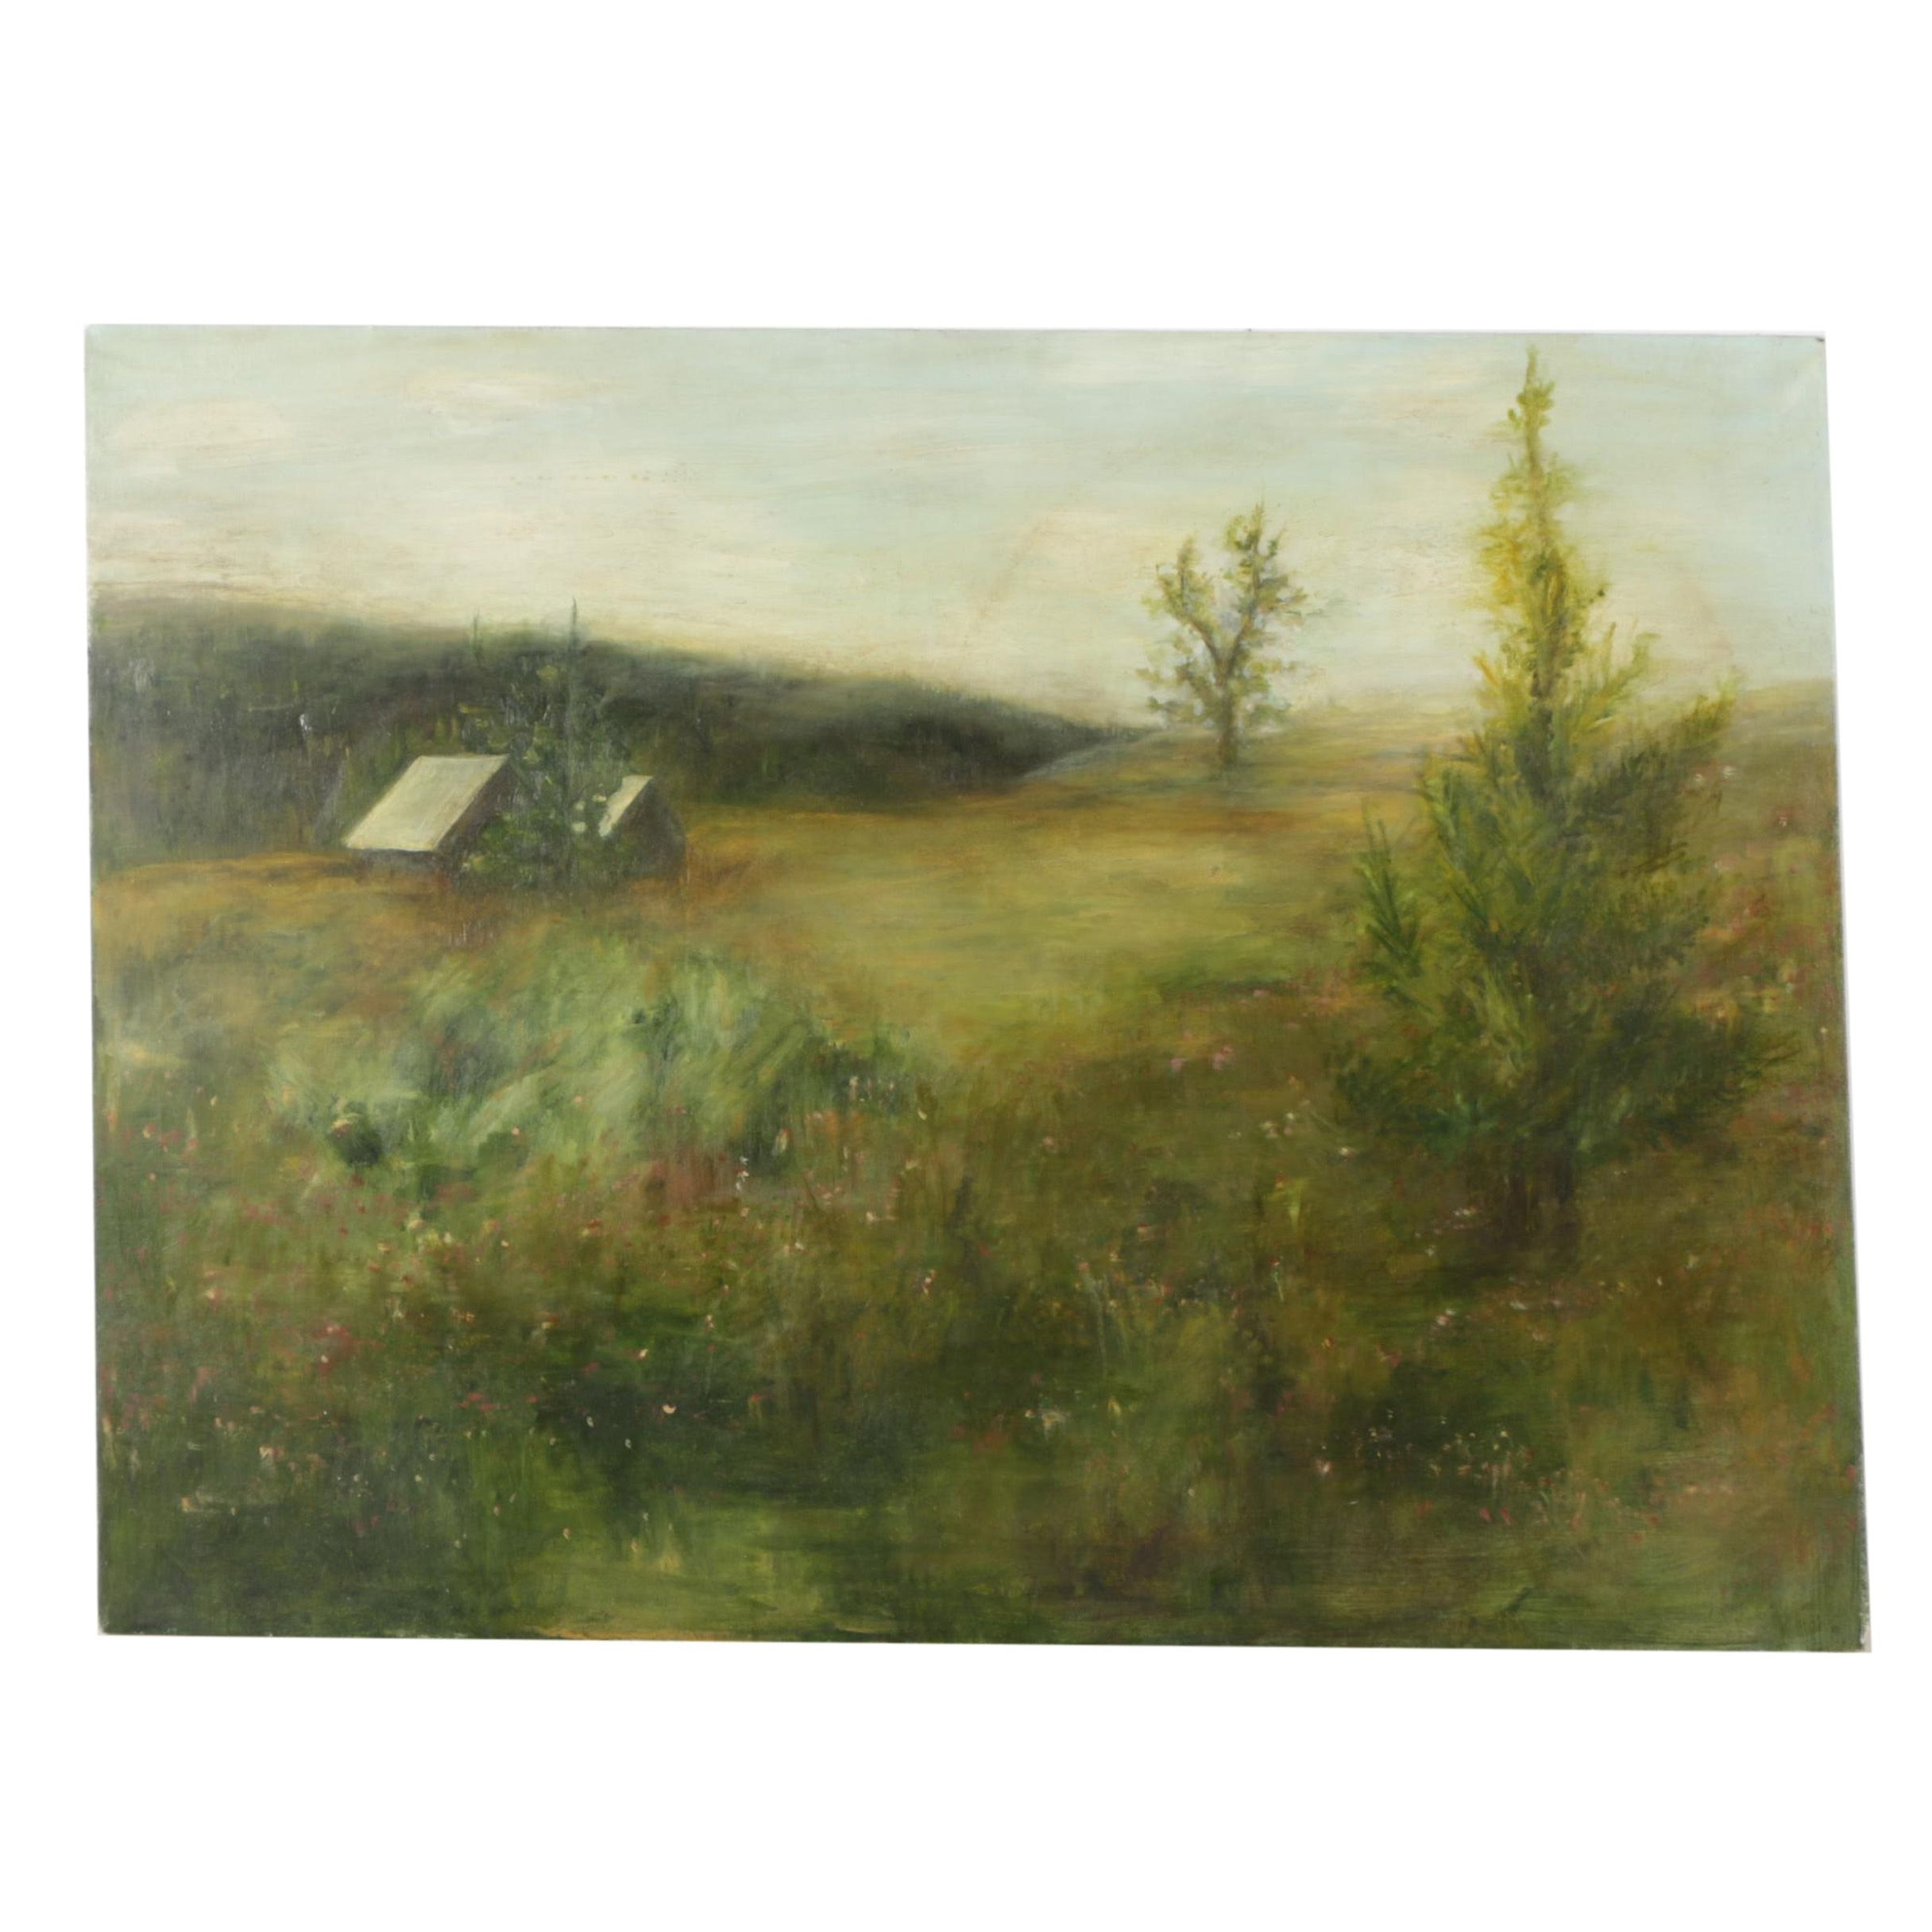 Oil Painting of a Pastoral Landscape